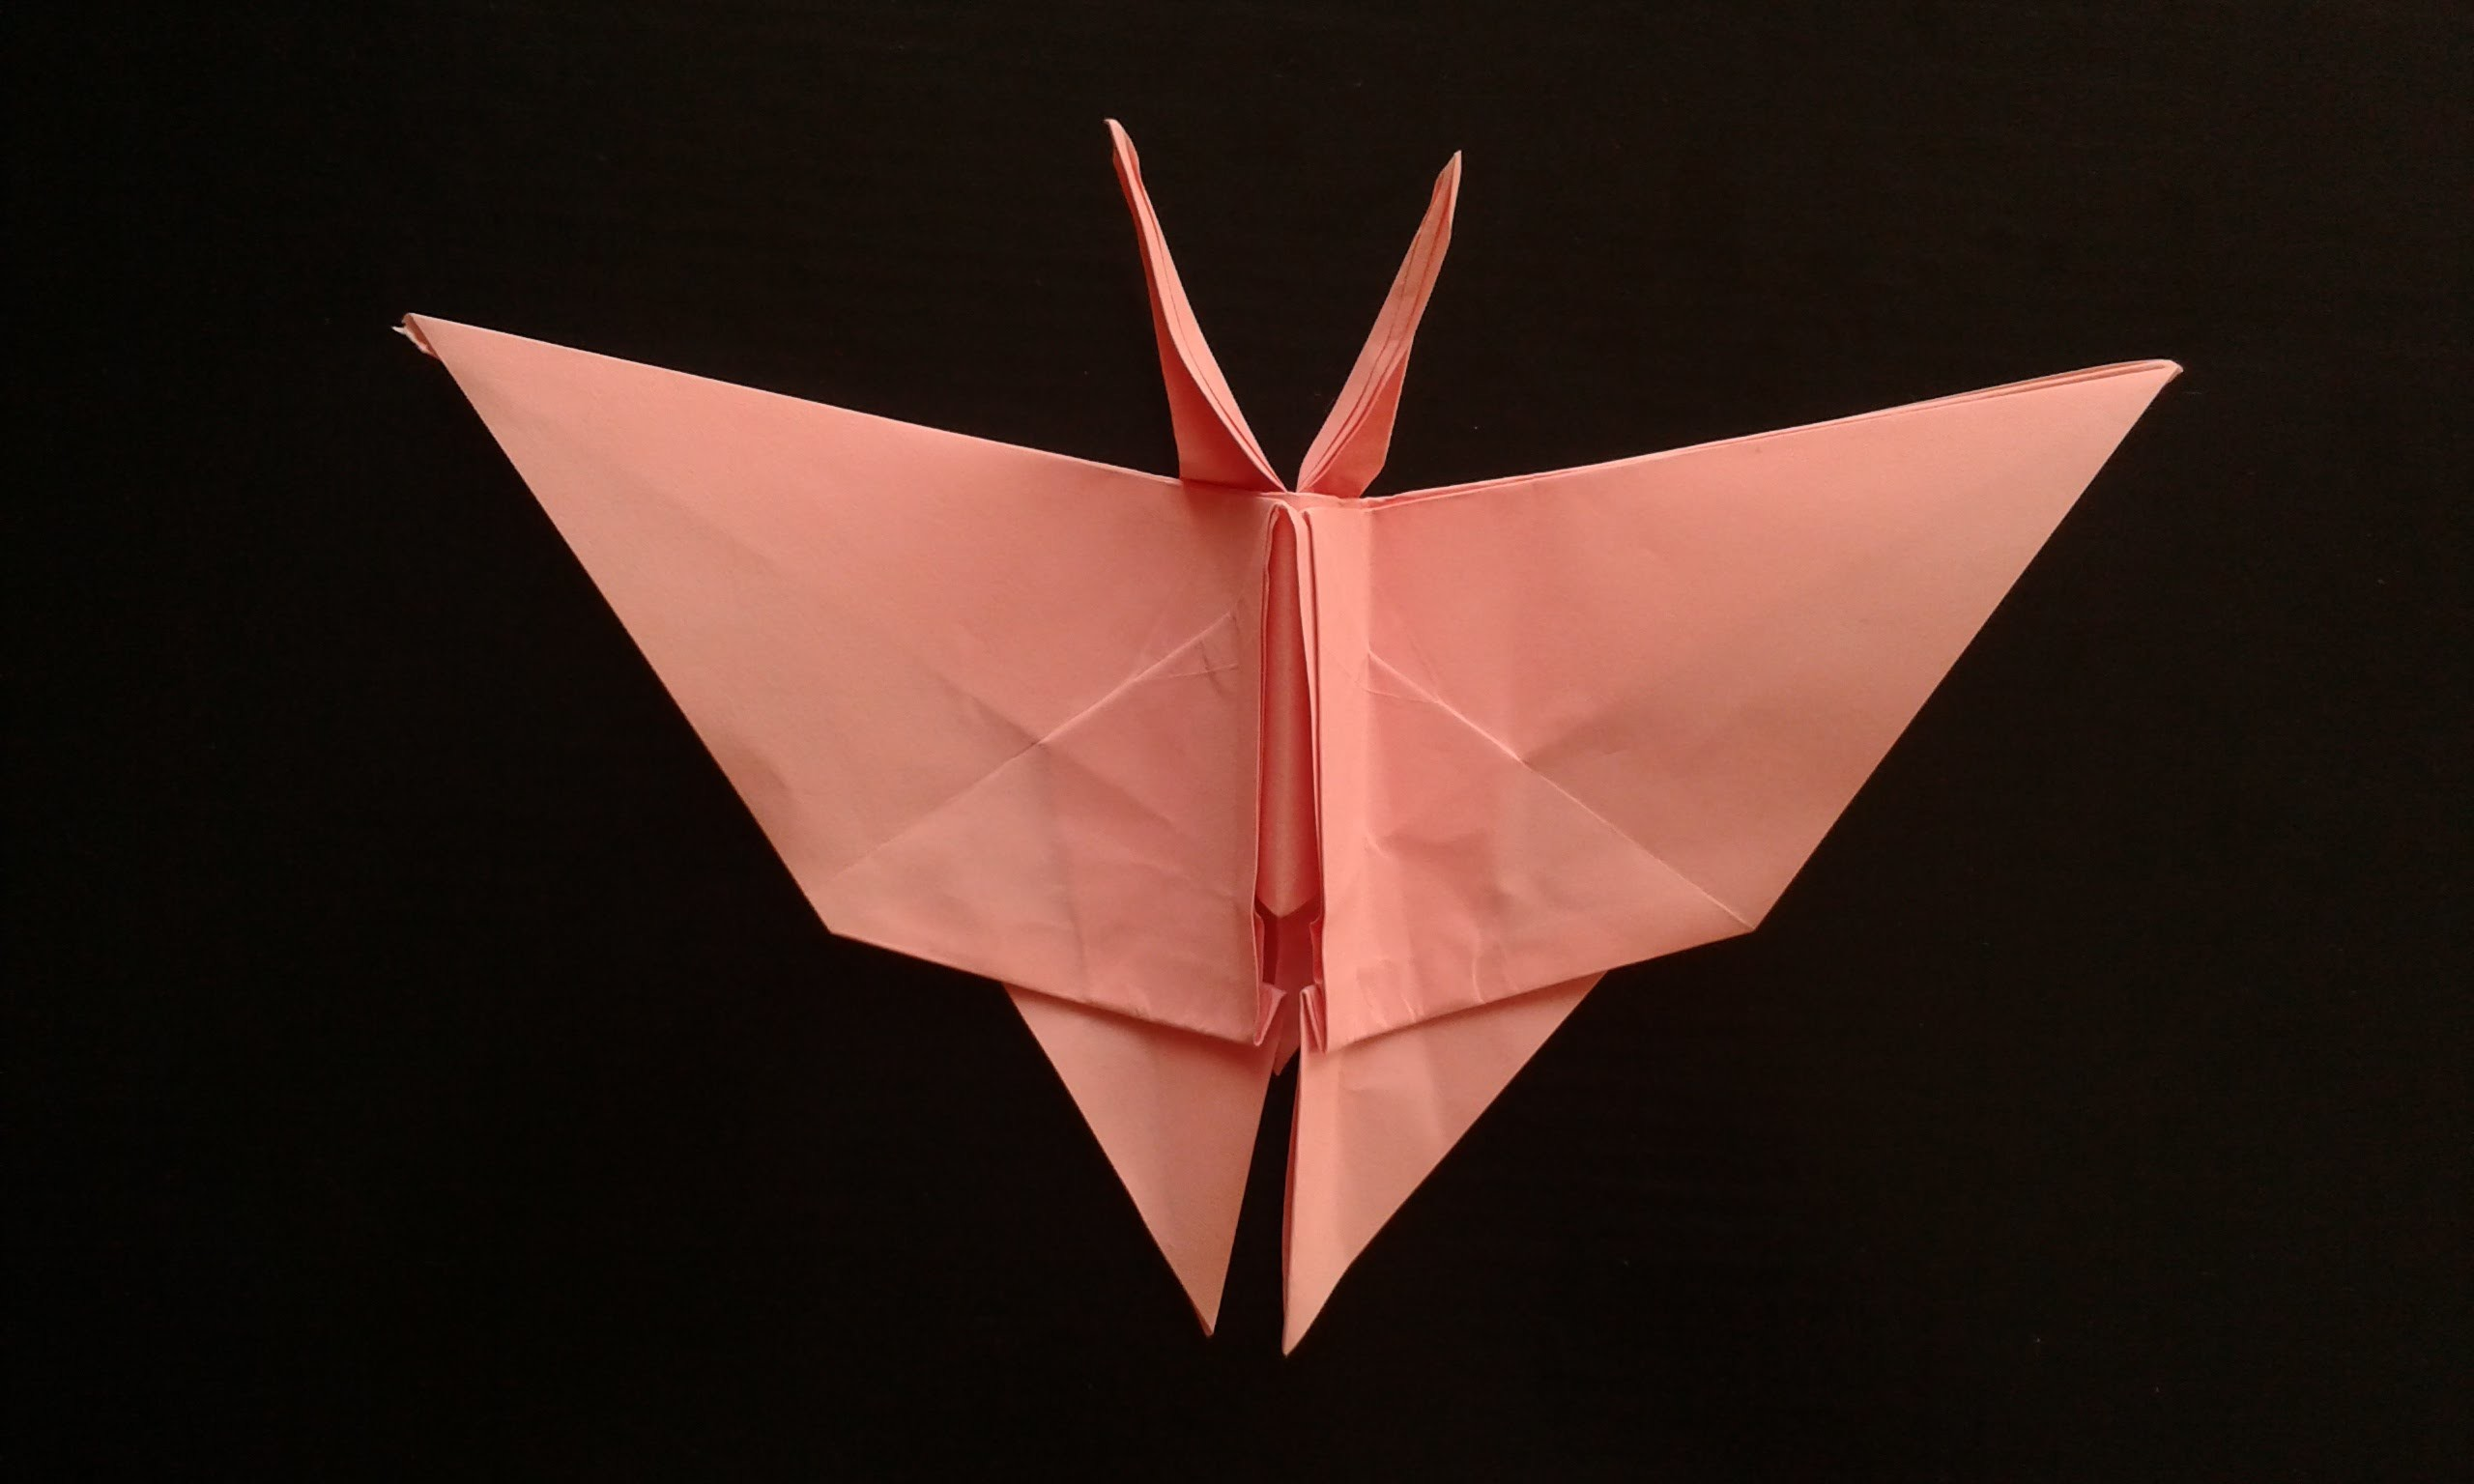 How to make an origami Butterfly оригами бабочка - photo#45